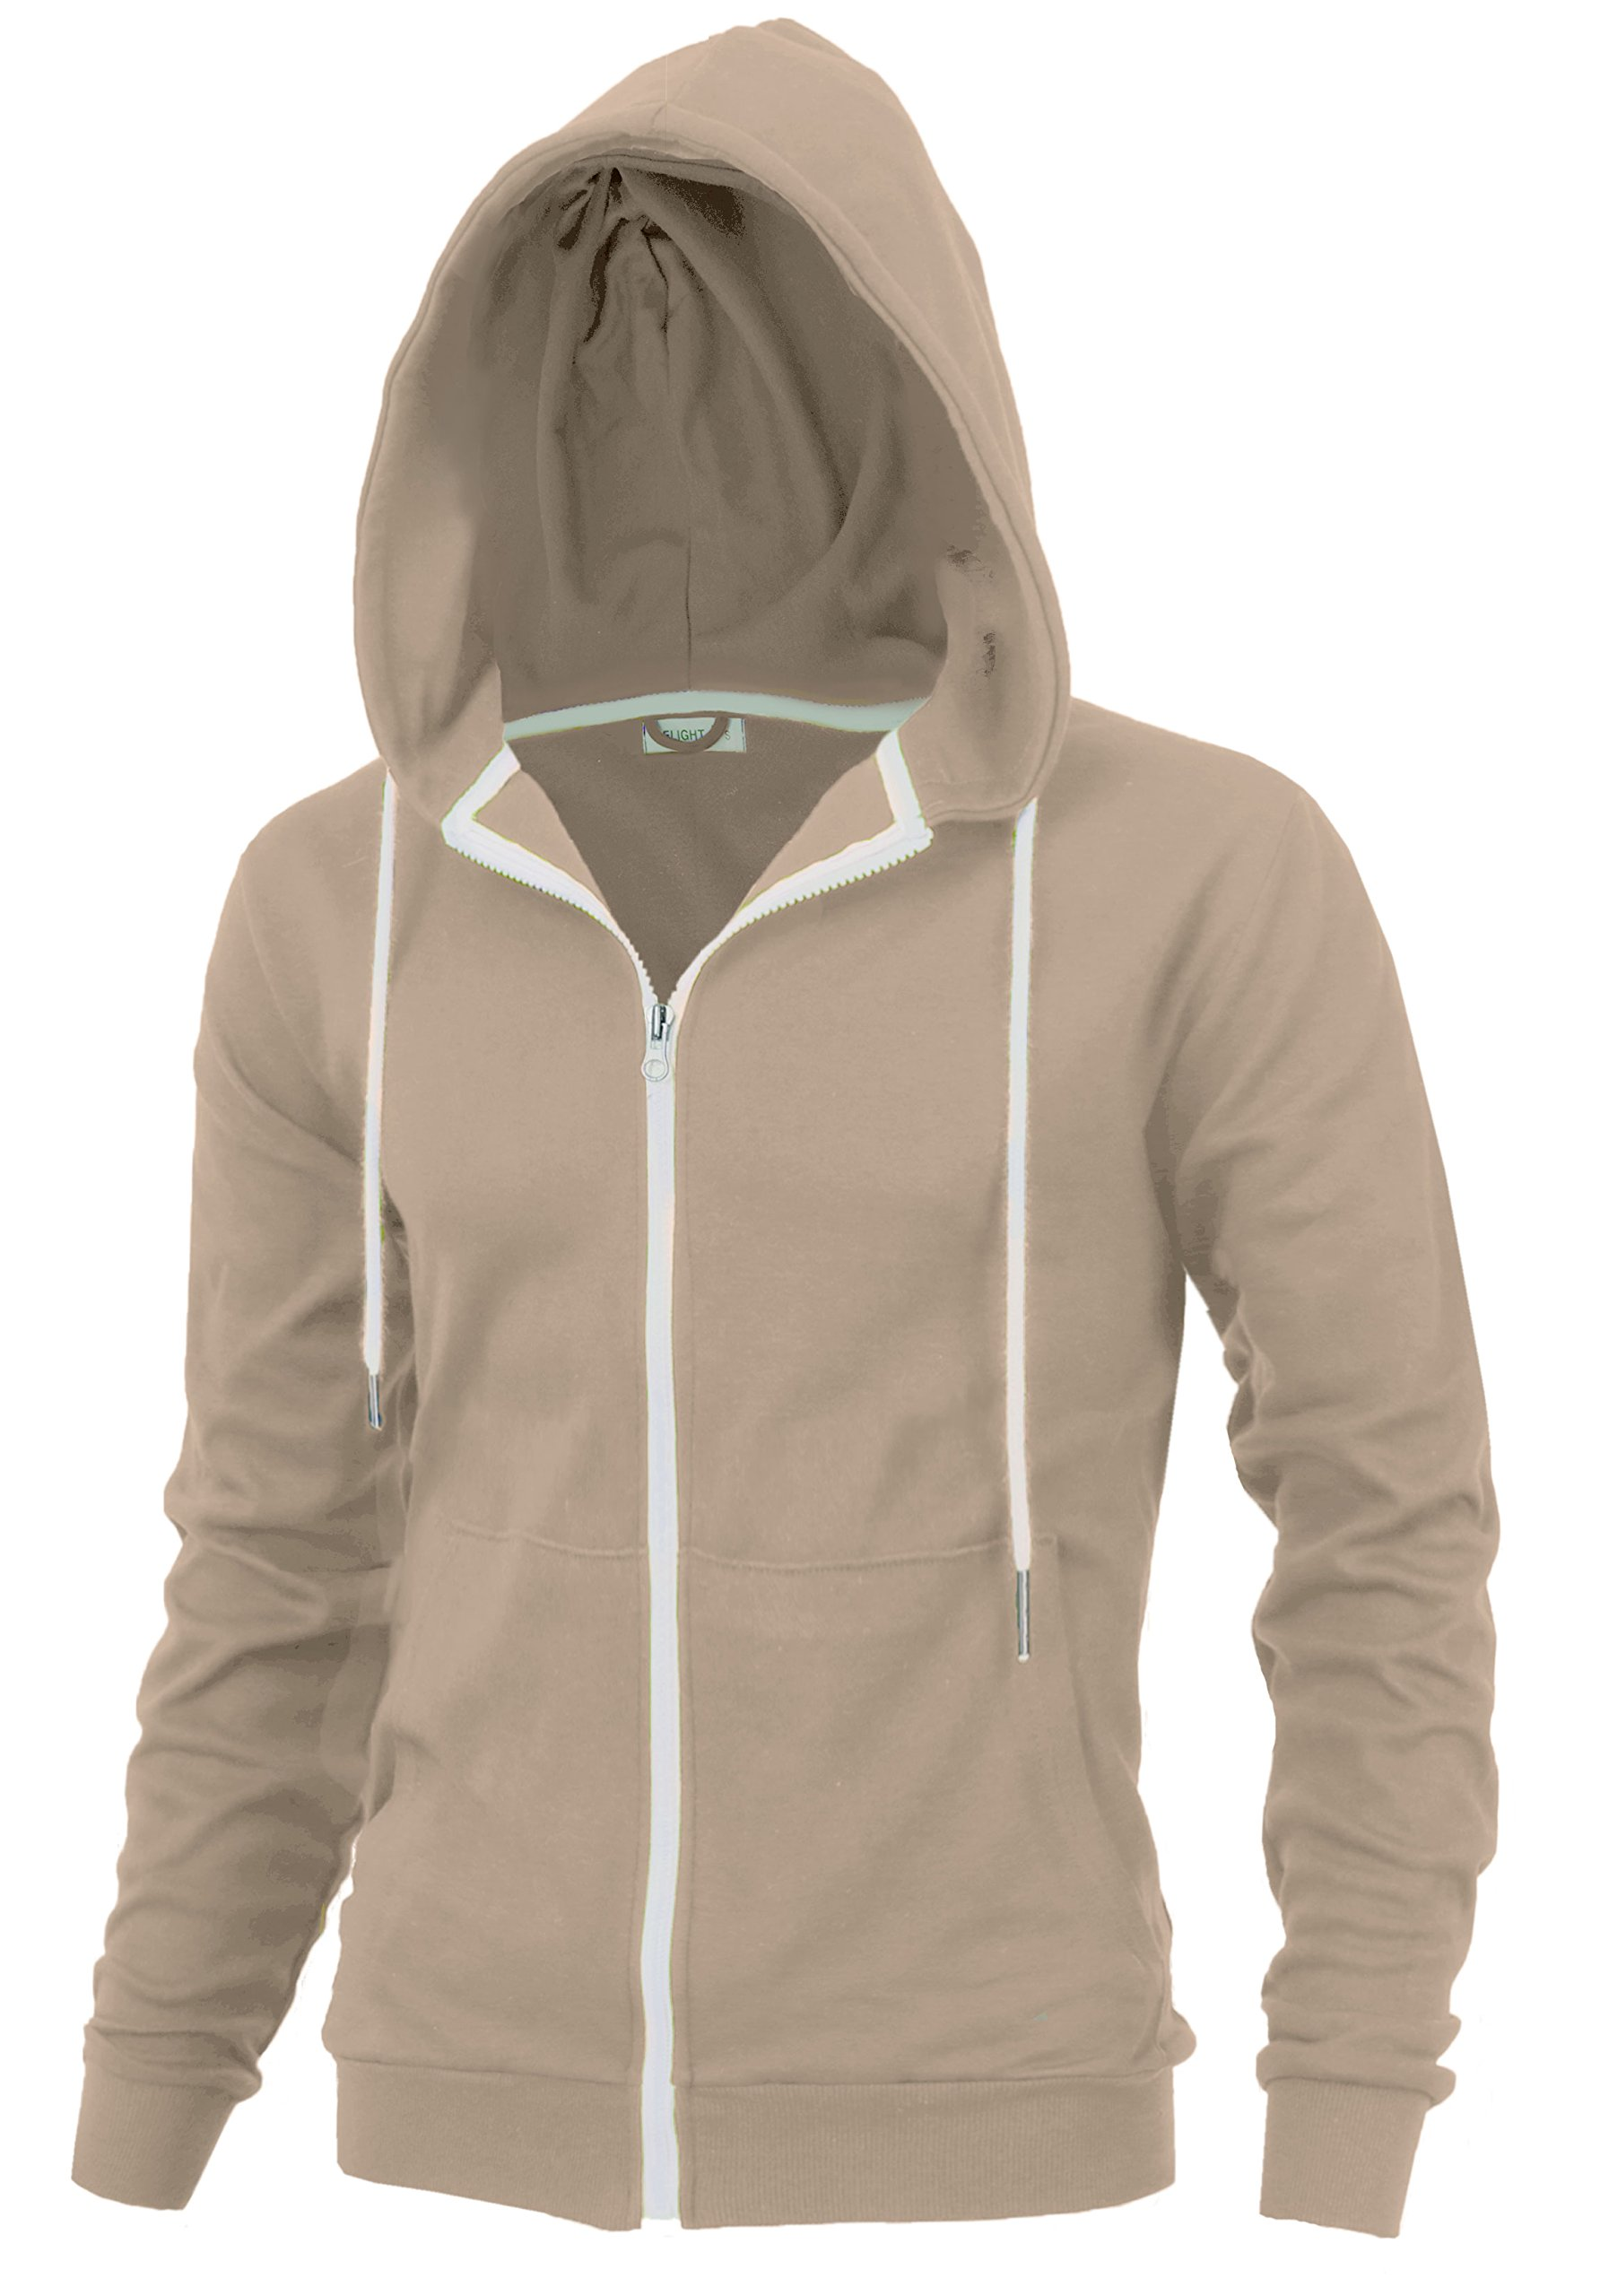 Delight Men's Fashion Fit Full-Zip Hoodie with Inner Cell Phone Pocket (US Large, Beige)